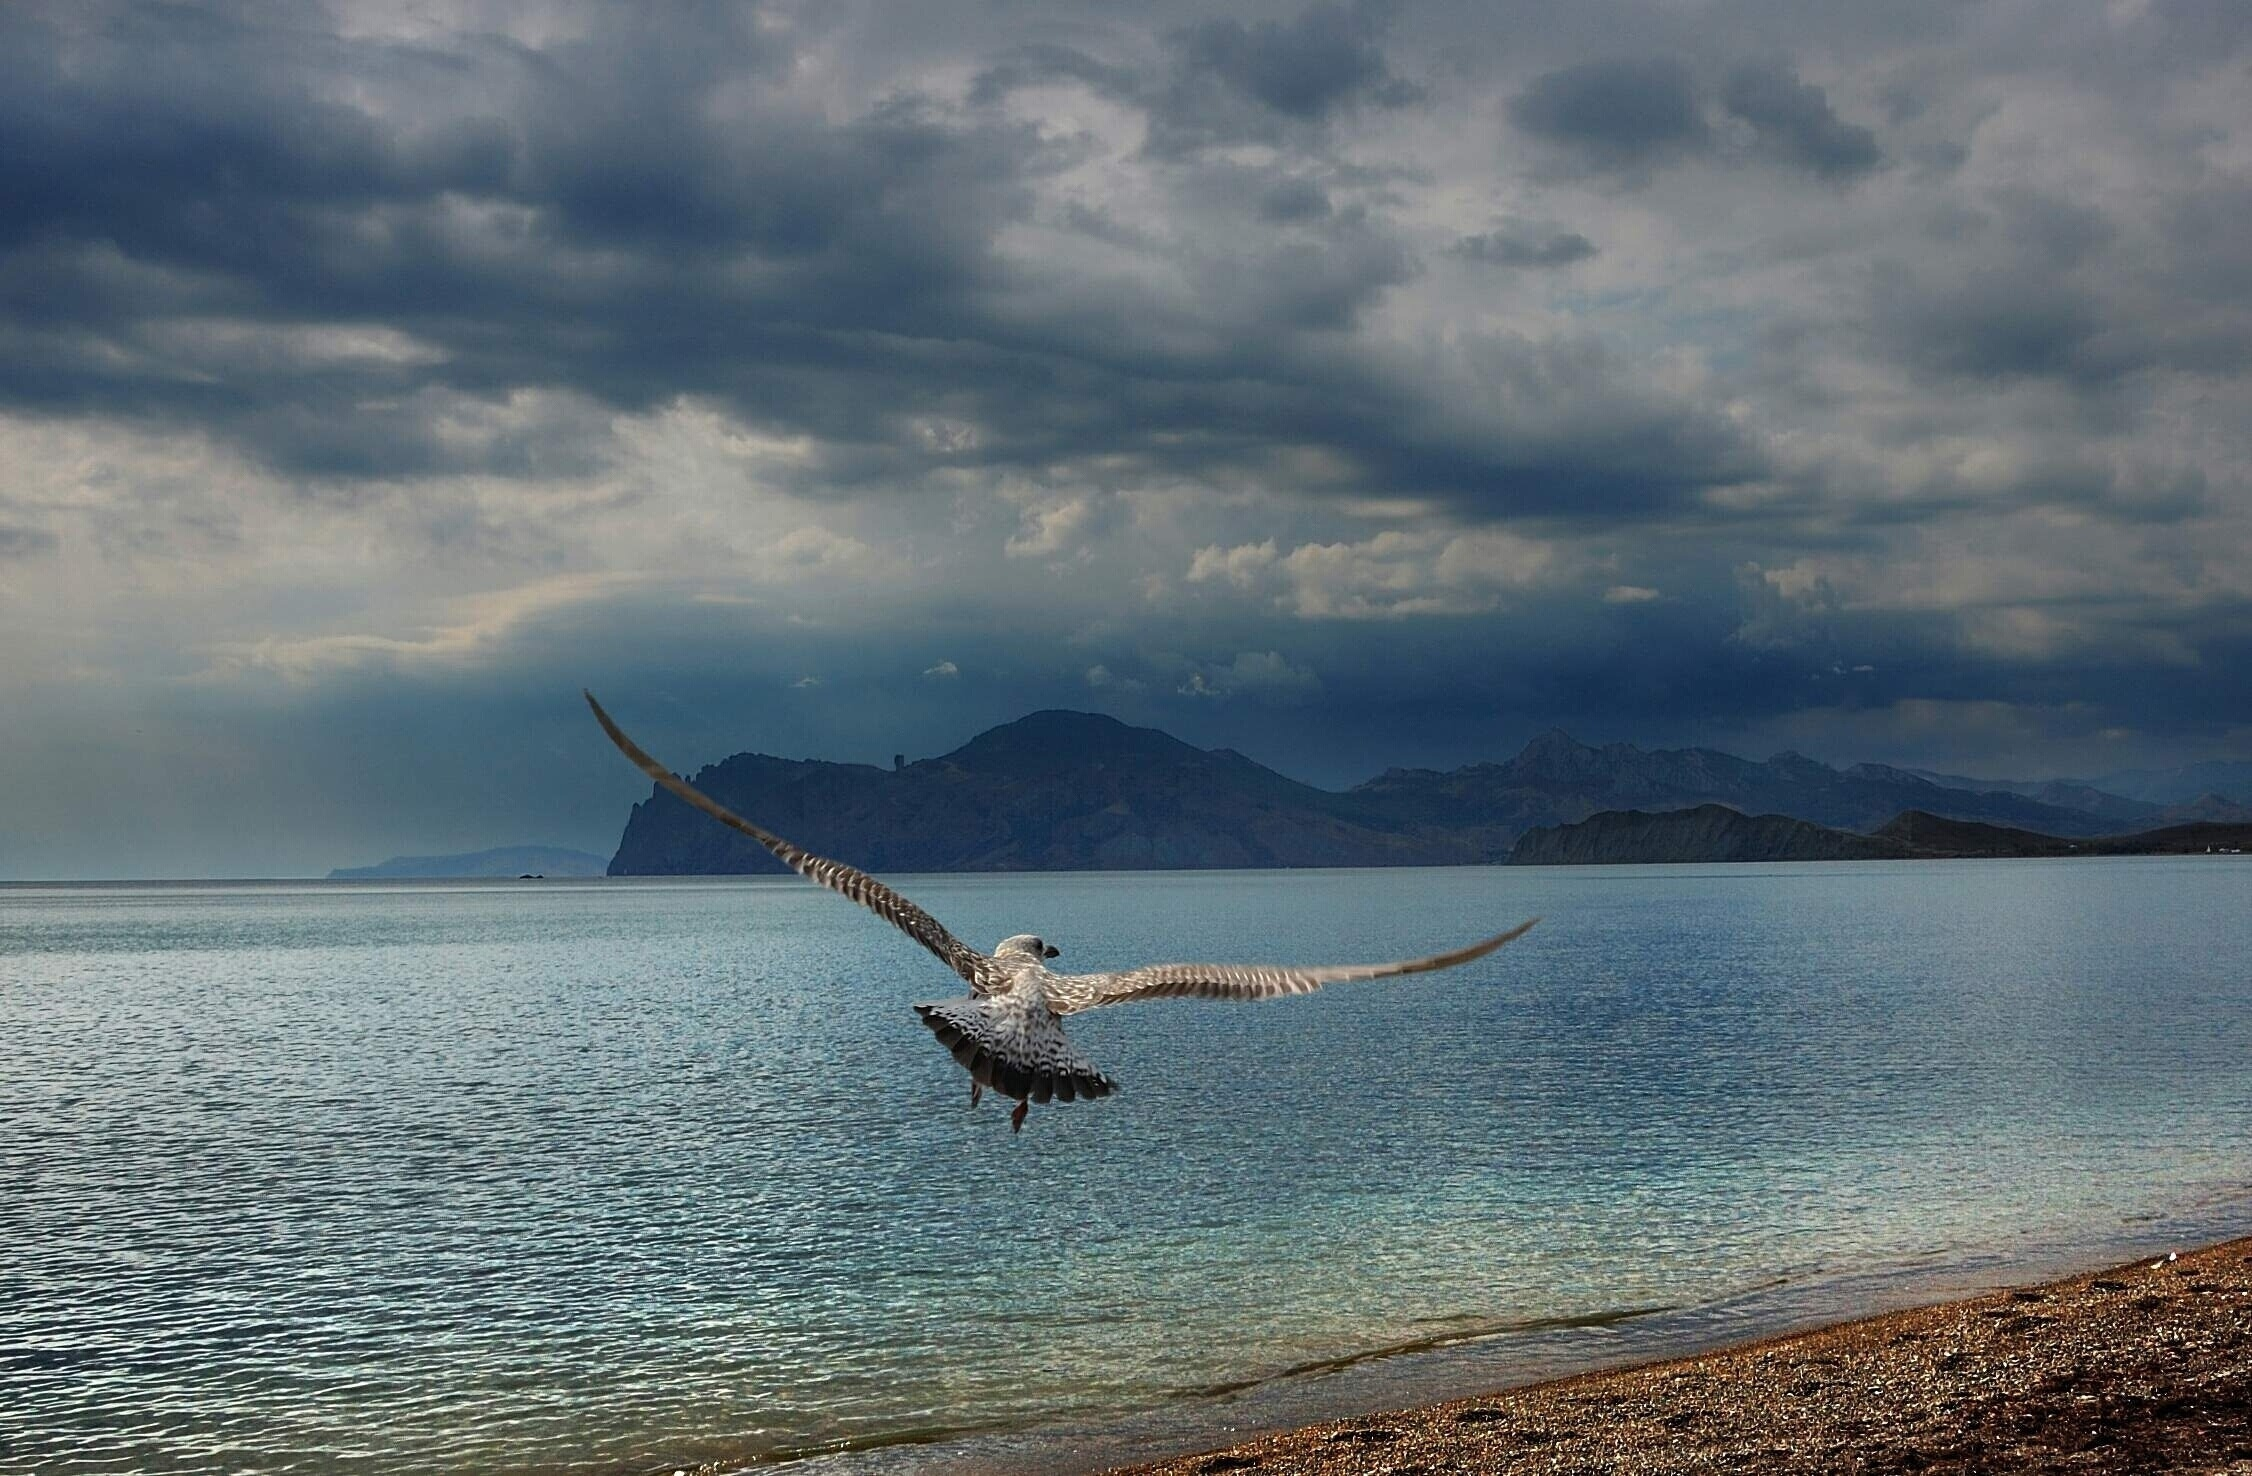 76618 download wallpaper Animals, Bird, Predator, Sea, Flight, Wings, Sweep, Wave, Shore, Bank, Mountains screensavers and pictures for free